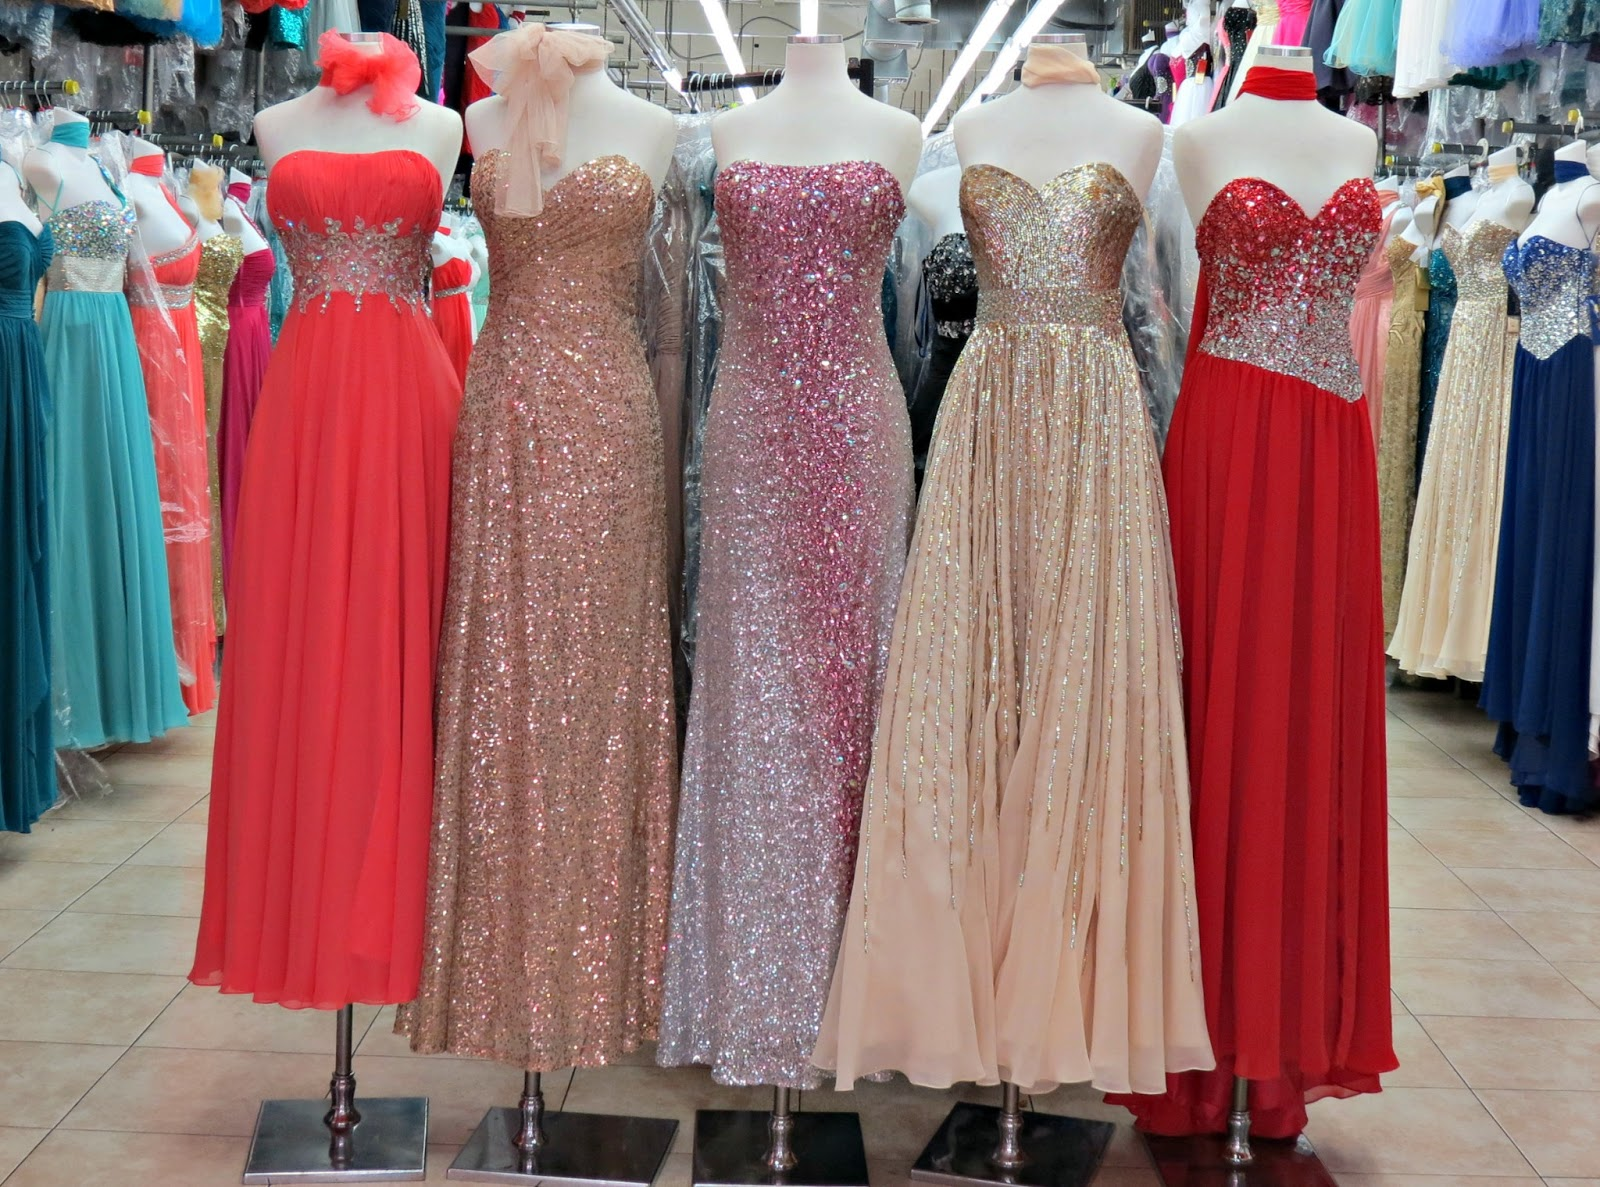 c5e54b66acc5 Prom Dress Stores In Los Angeles - Nini Dress